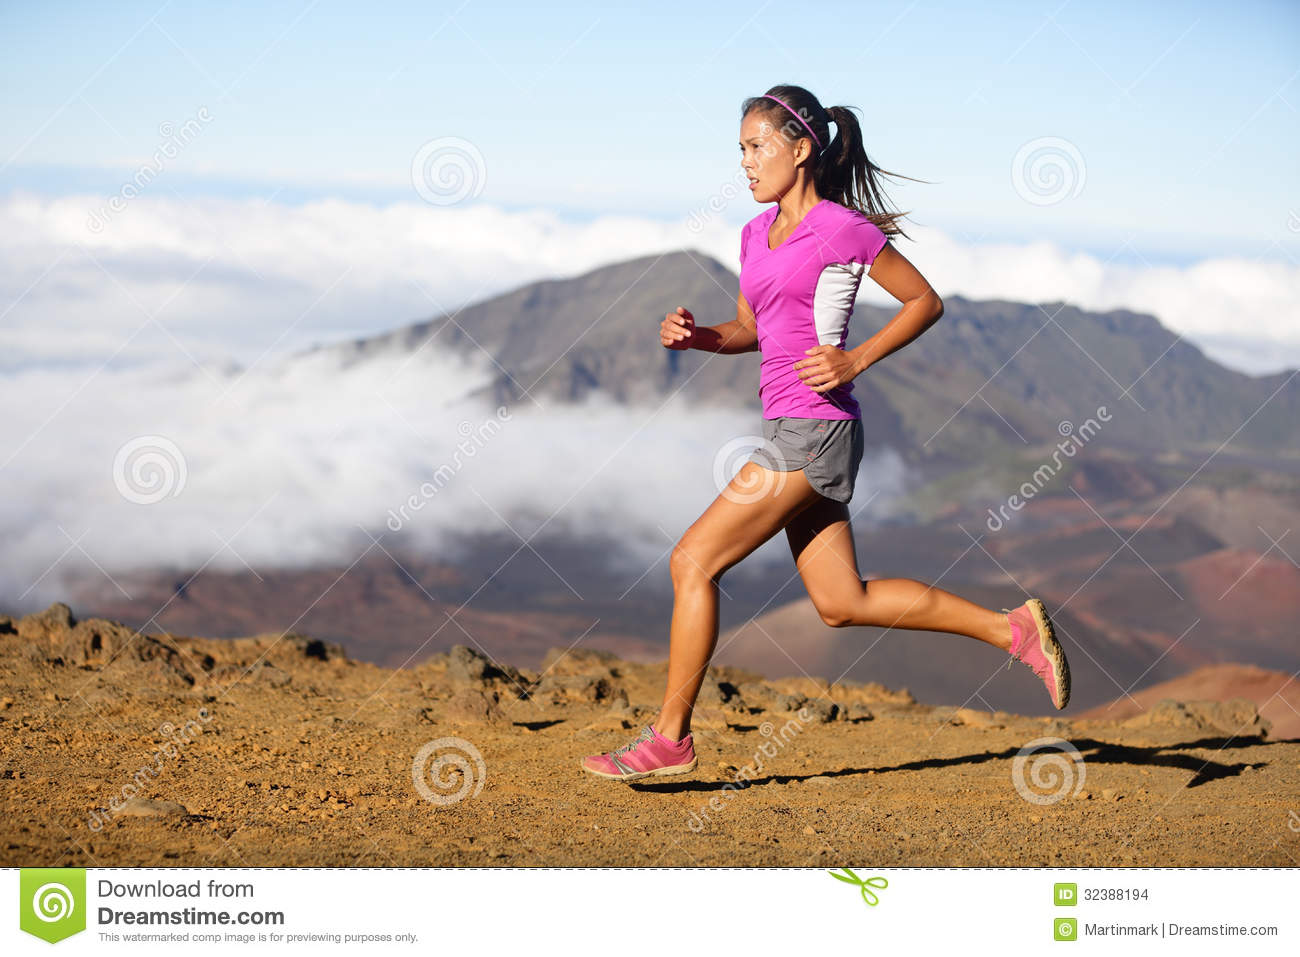 Succes Runner Woman Athlete Running Sprinting Stock Photo ...